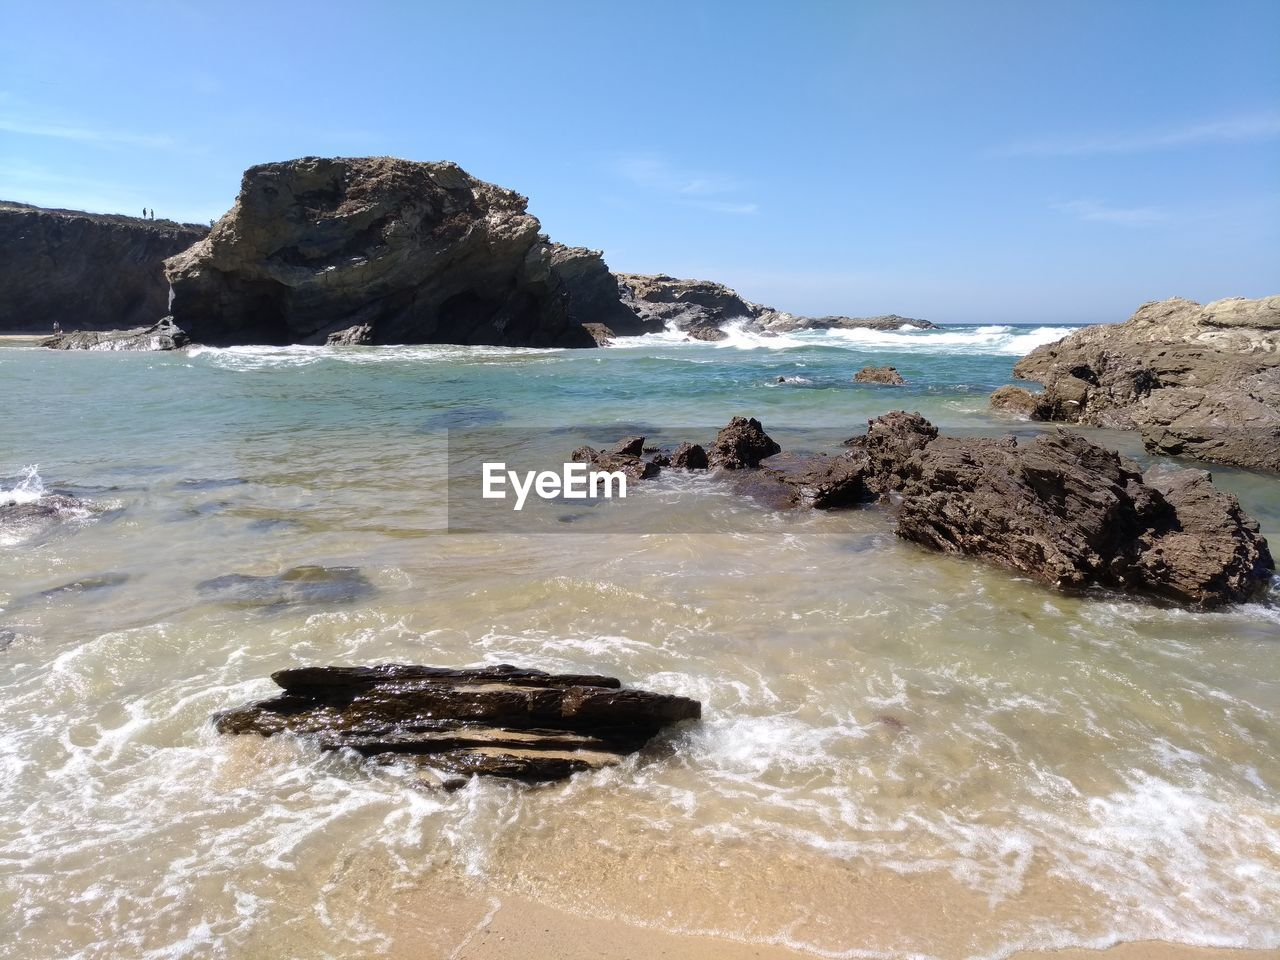 sea, water, rock, sky, rock - object, solid, beauty in nature, scenics - nature, horizon over water, land, horizon, beach, nature, rock formation, motion, no people, day, wave, tranquil scene, outdoors, power in nature, rocky coastline